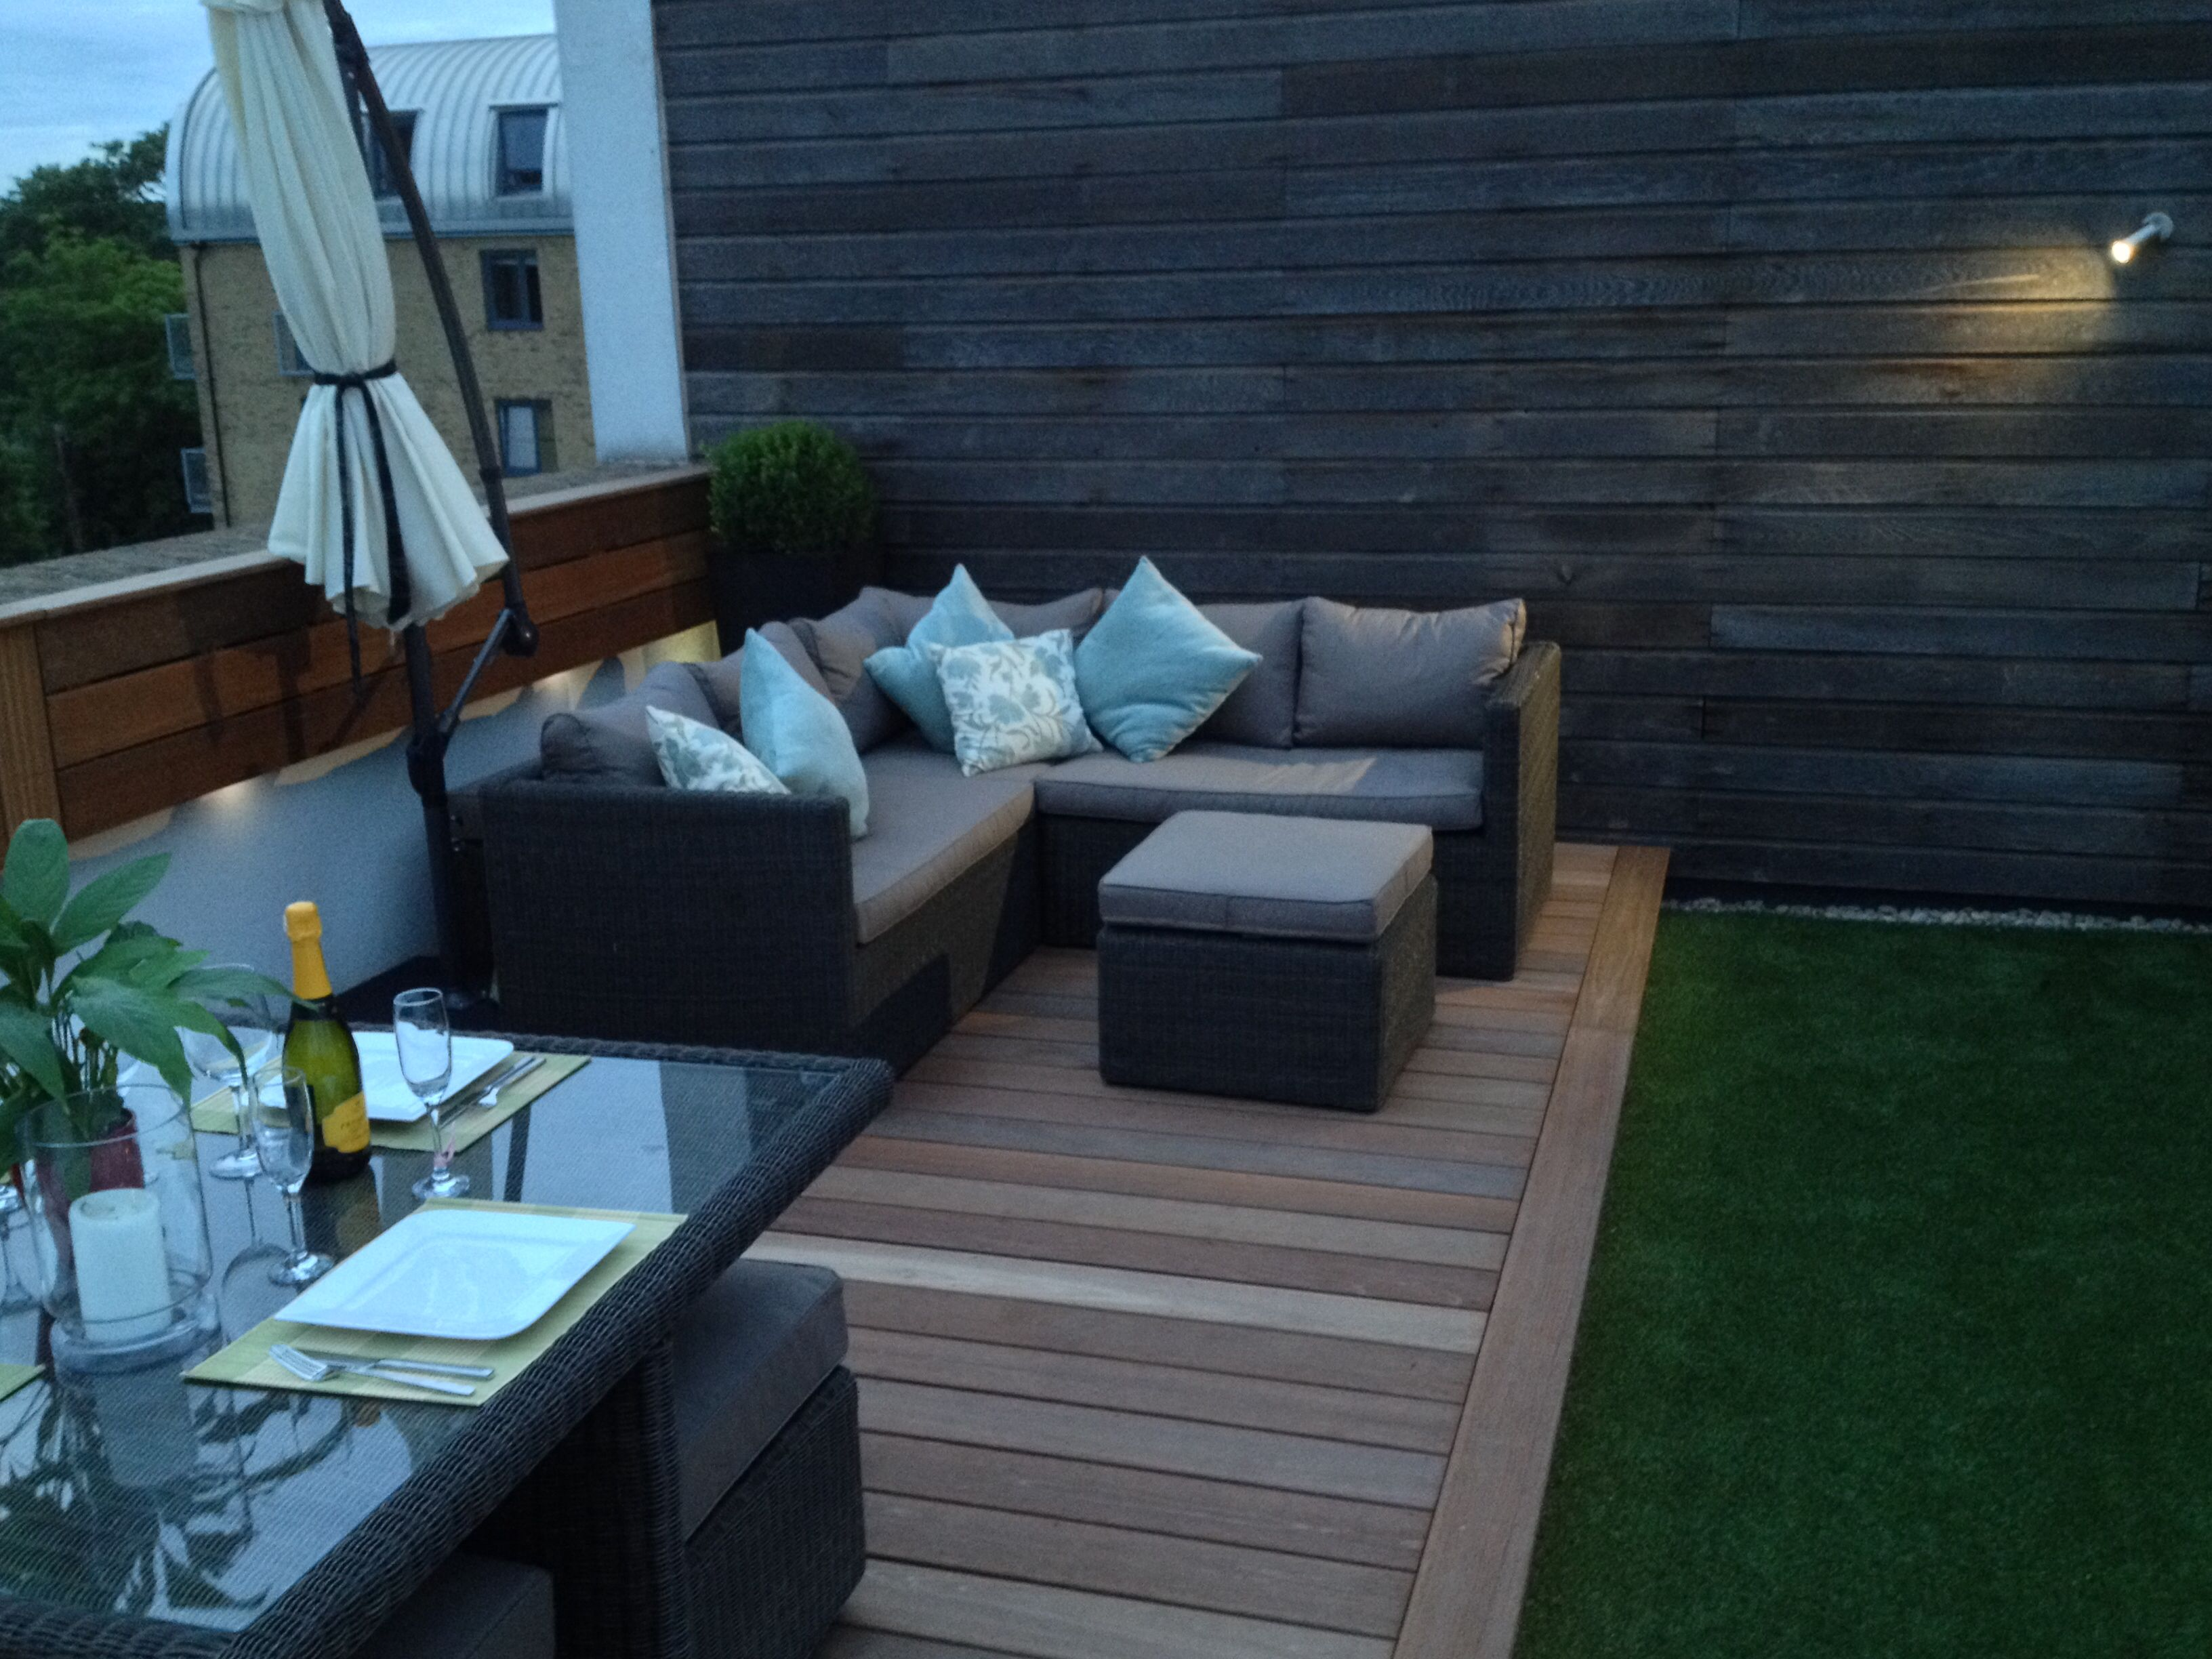 Roof Terrace Furniture Hardwood Deck With Artificial